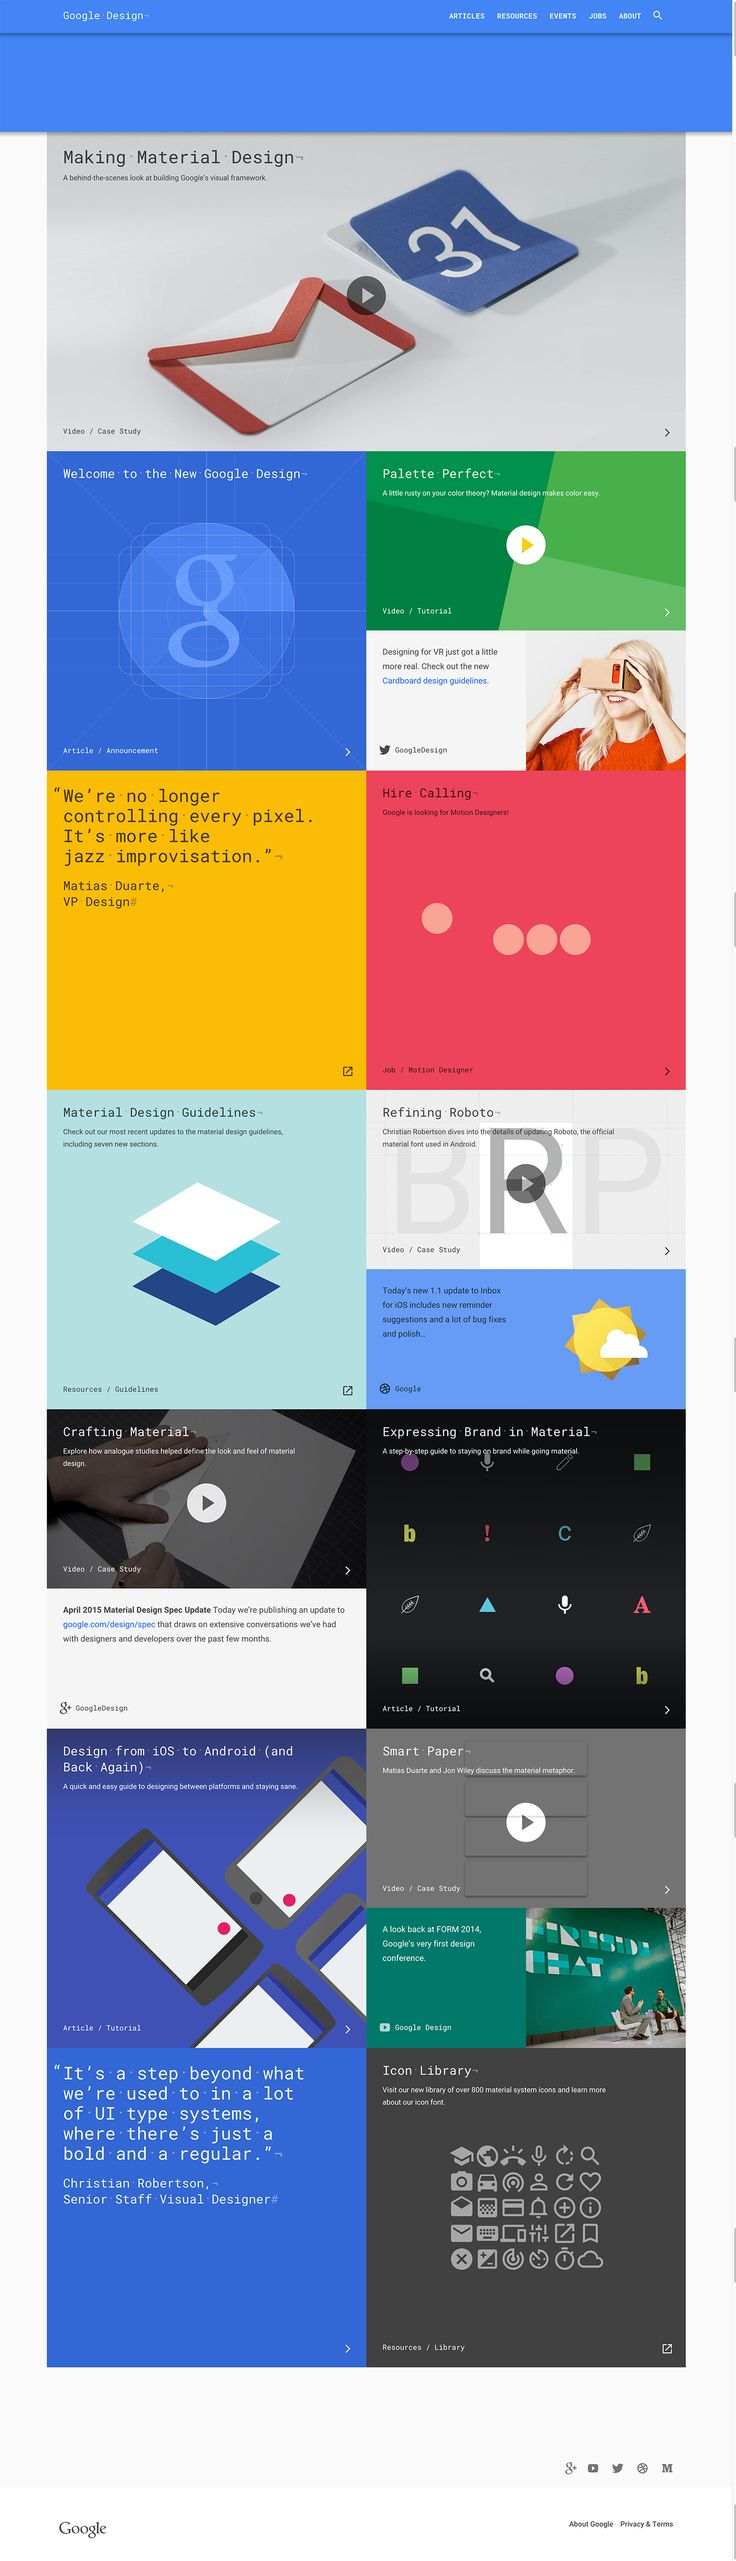 New Google Design  #materialdesign